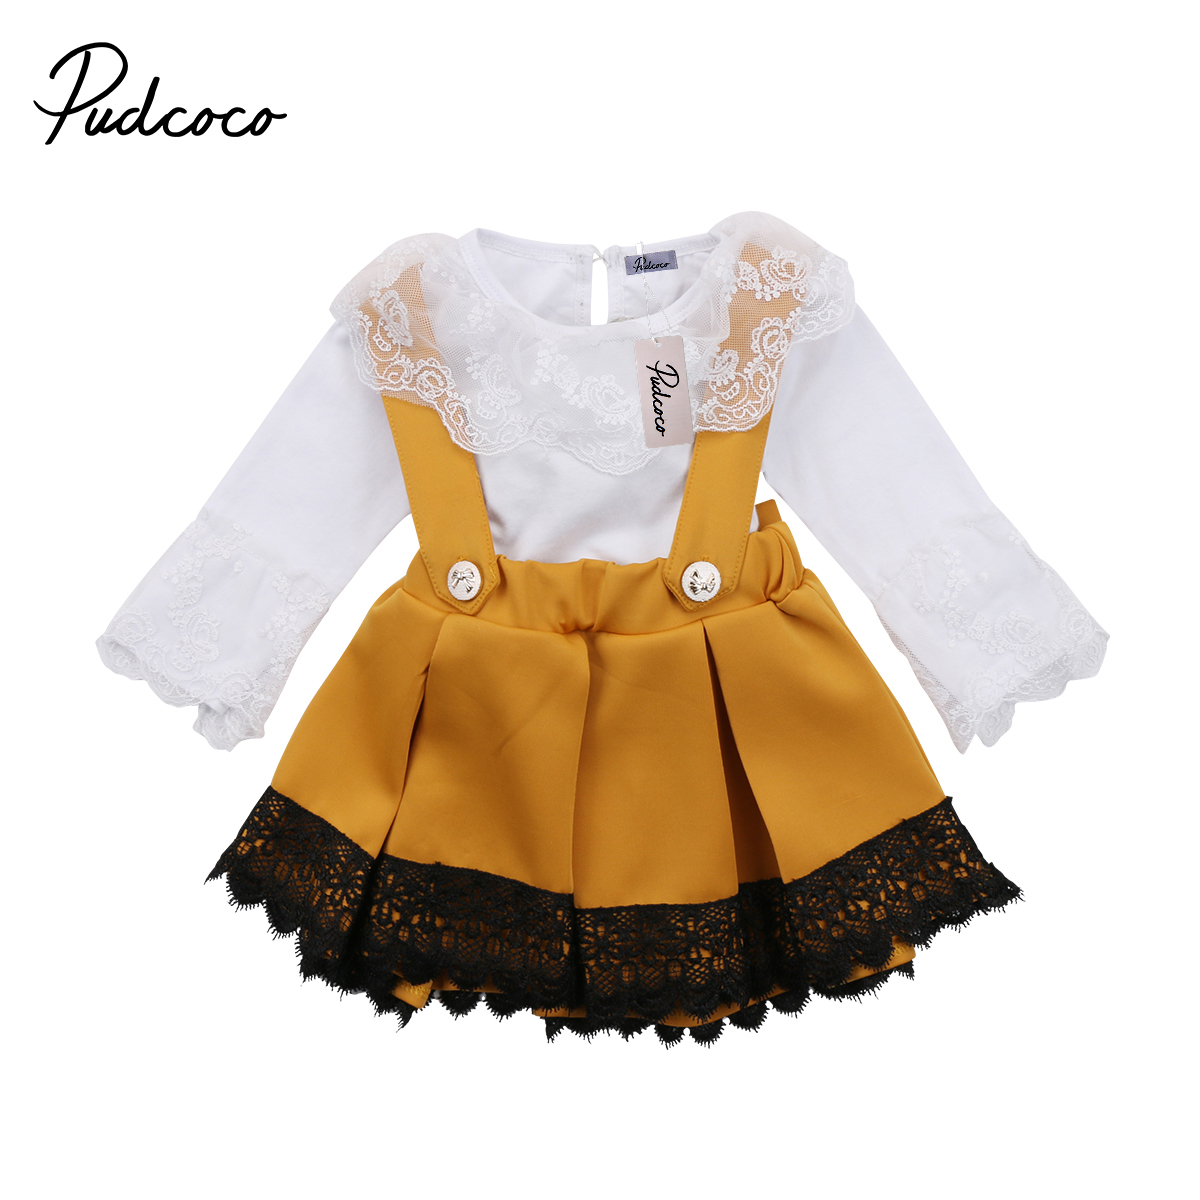 90e1cb0fa Detail Feedback Questions about pudcoco Newest Arrivals Hot Infant Newborn  Toddler Kid Baby Girls Lace Jumpsuit Romper Bodysuit Party Bow Skirt Outfits  Set ...